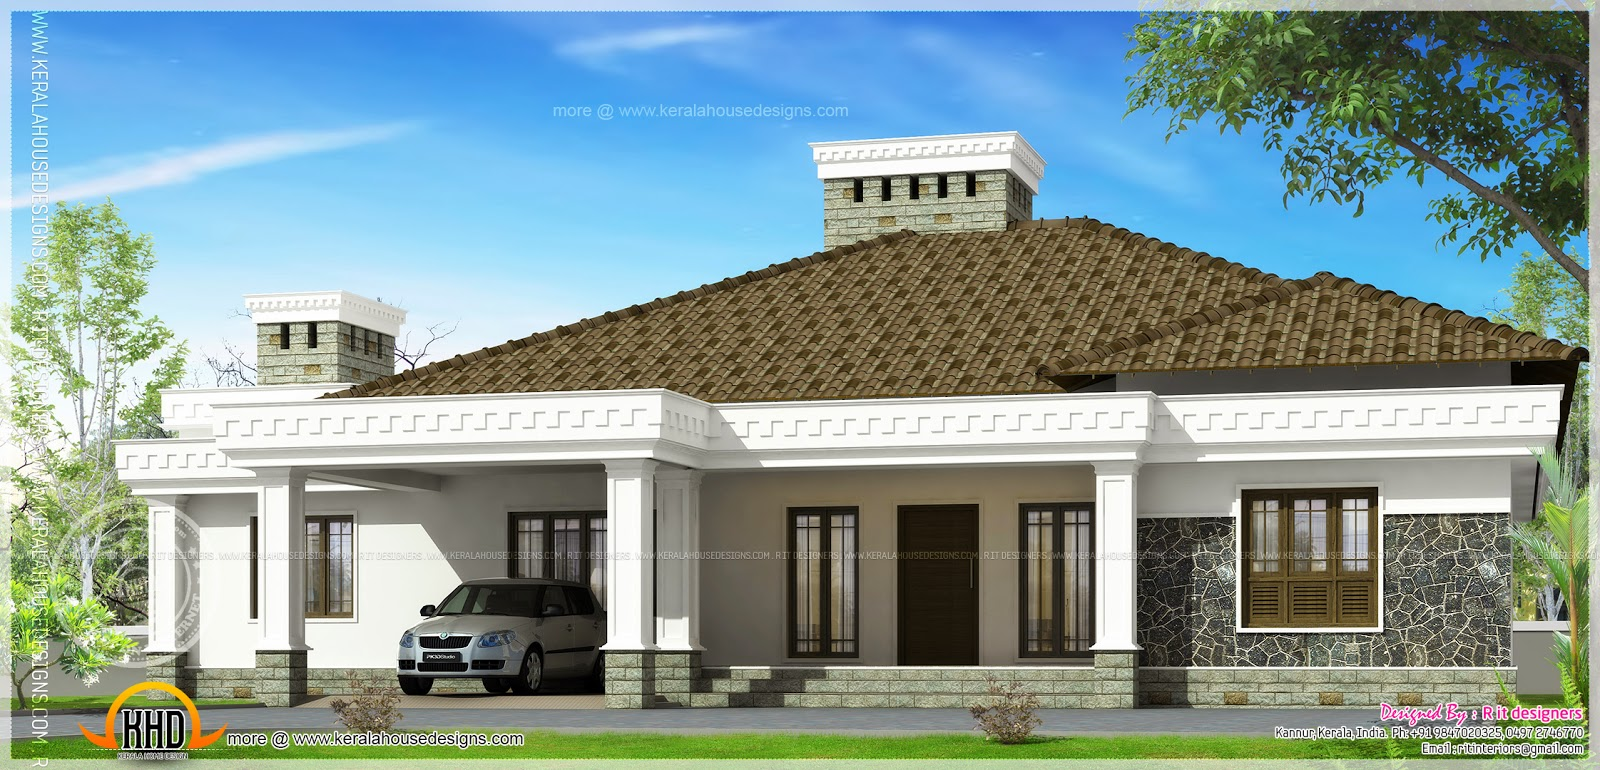 Big single storied house exterior - Kerala home design and floor plans